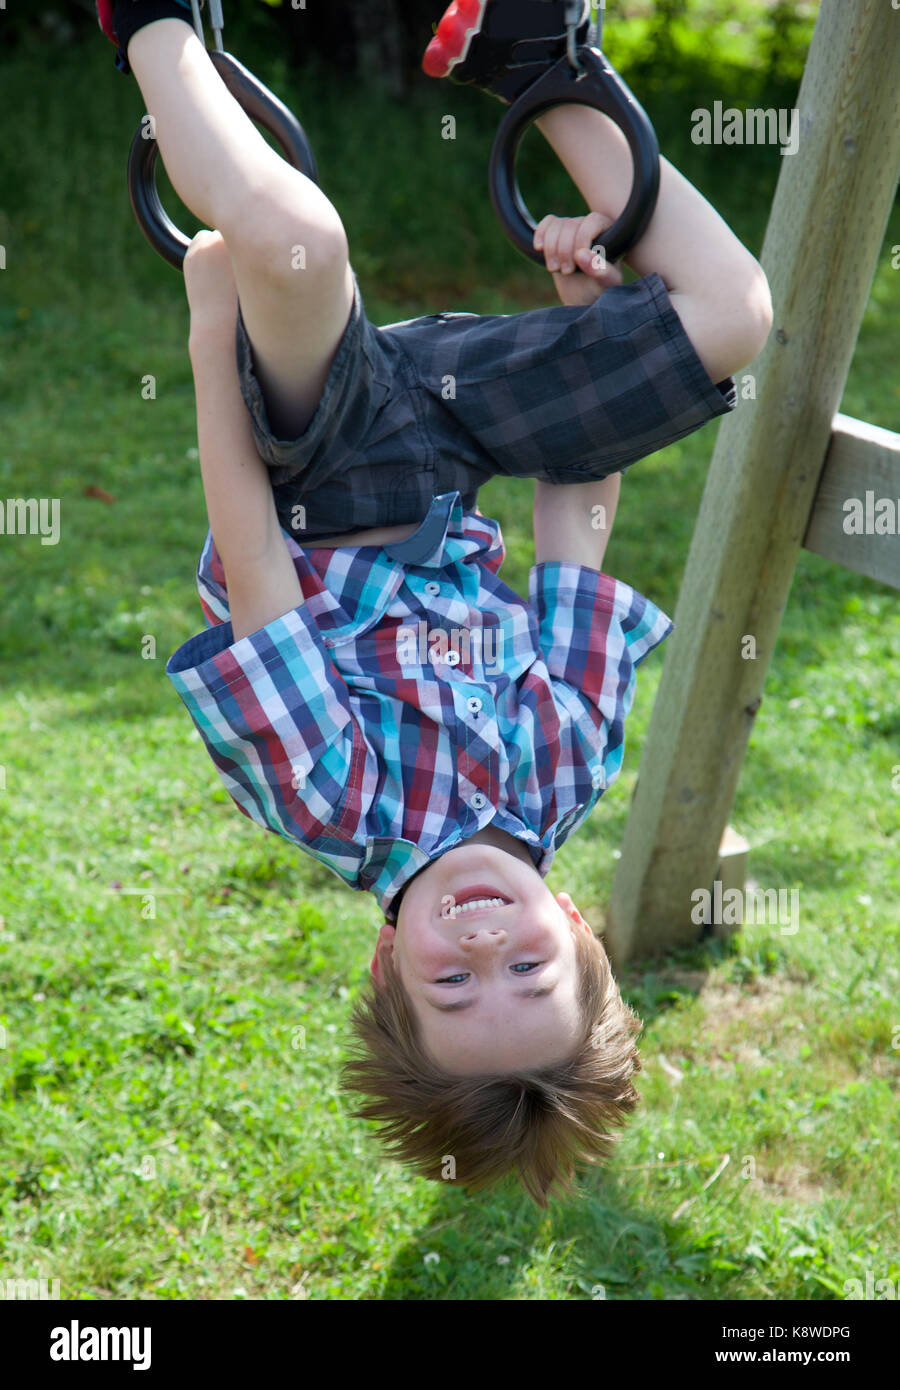 a smiling brown haired boy grins as he hangs upside down on rings on a swing set outside - Stock Image